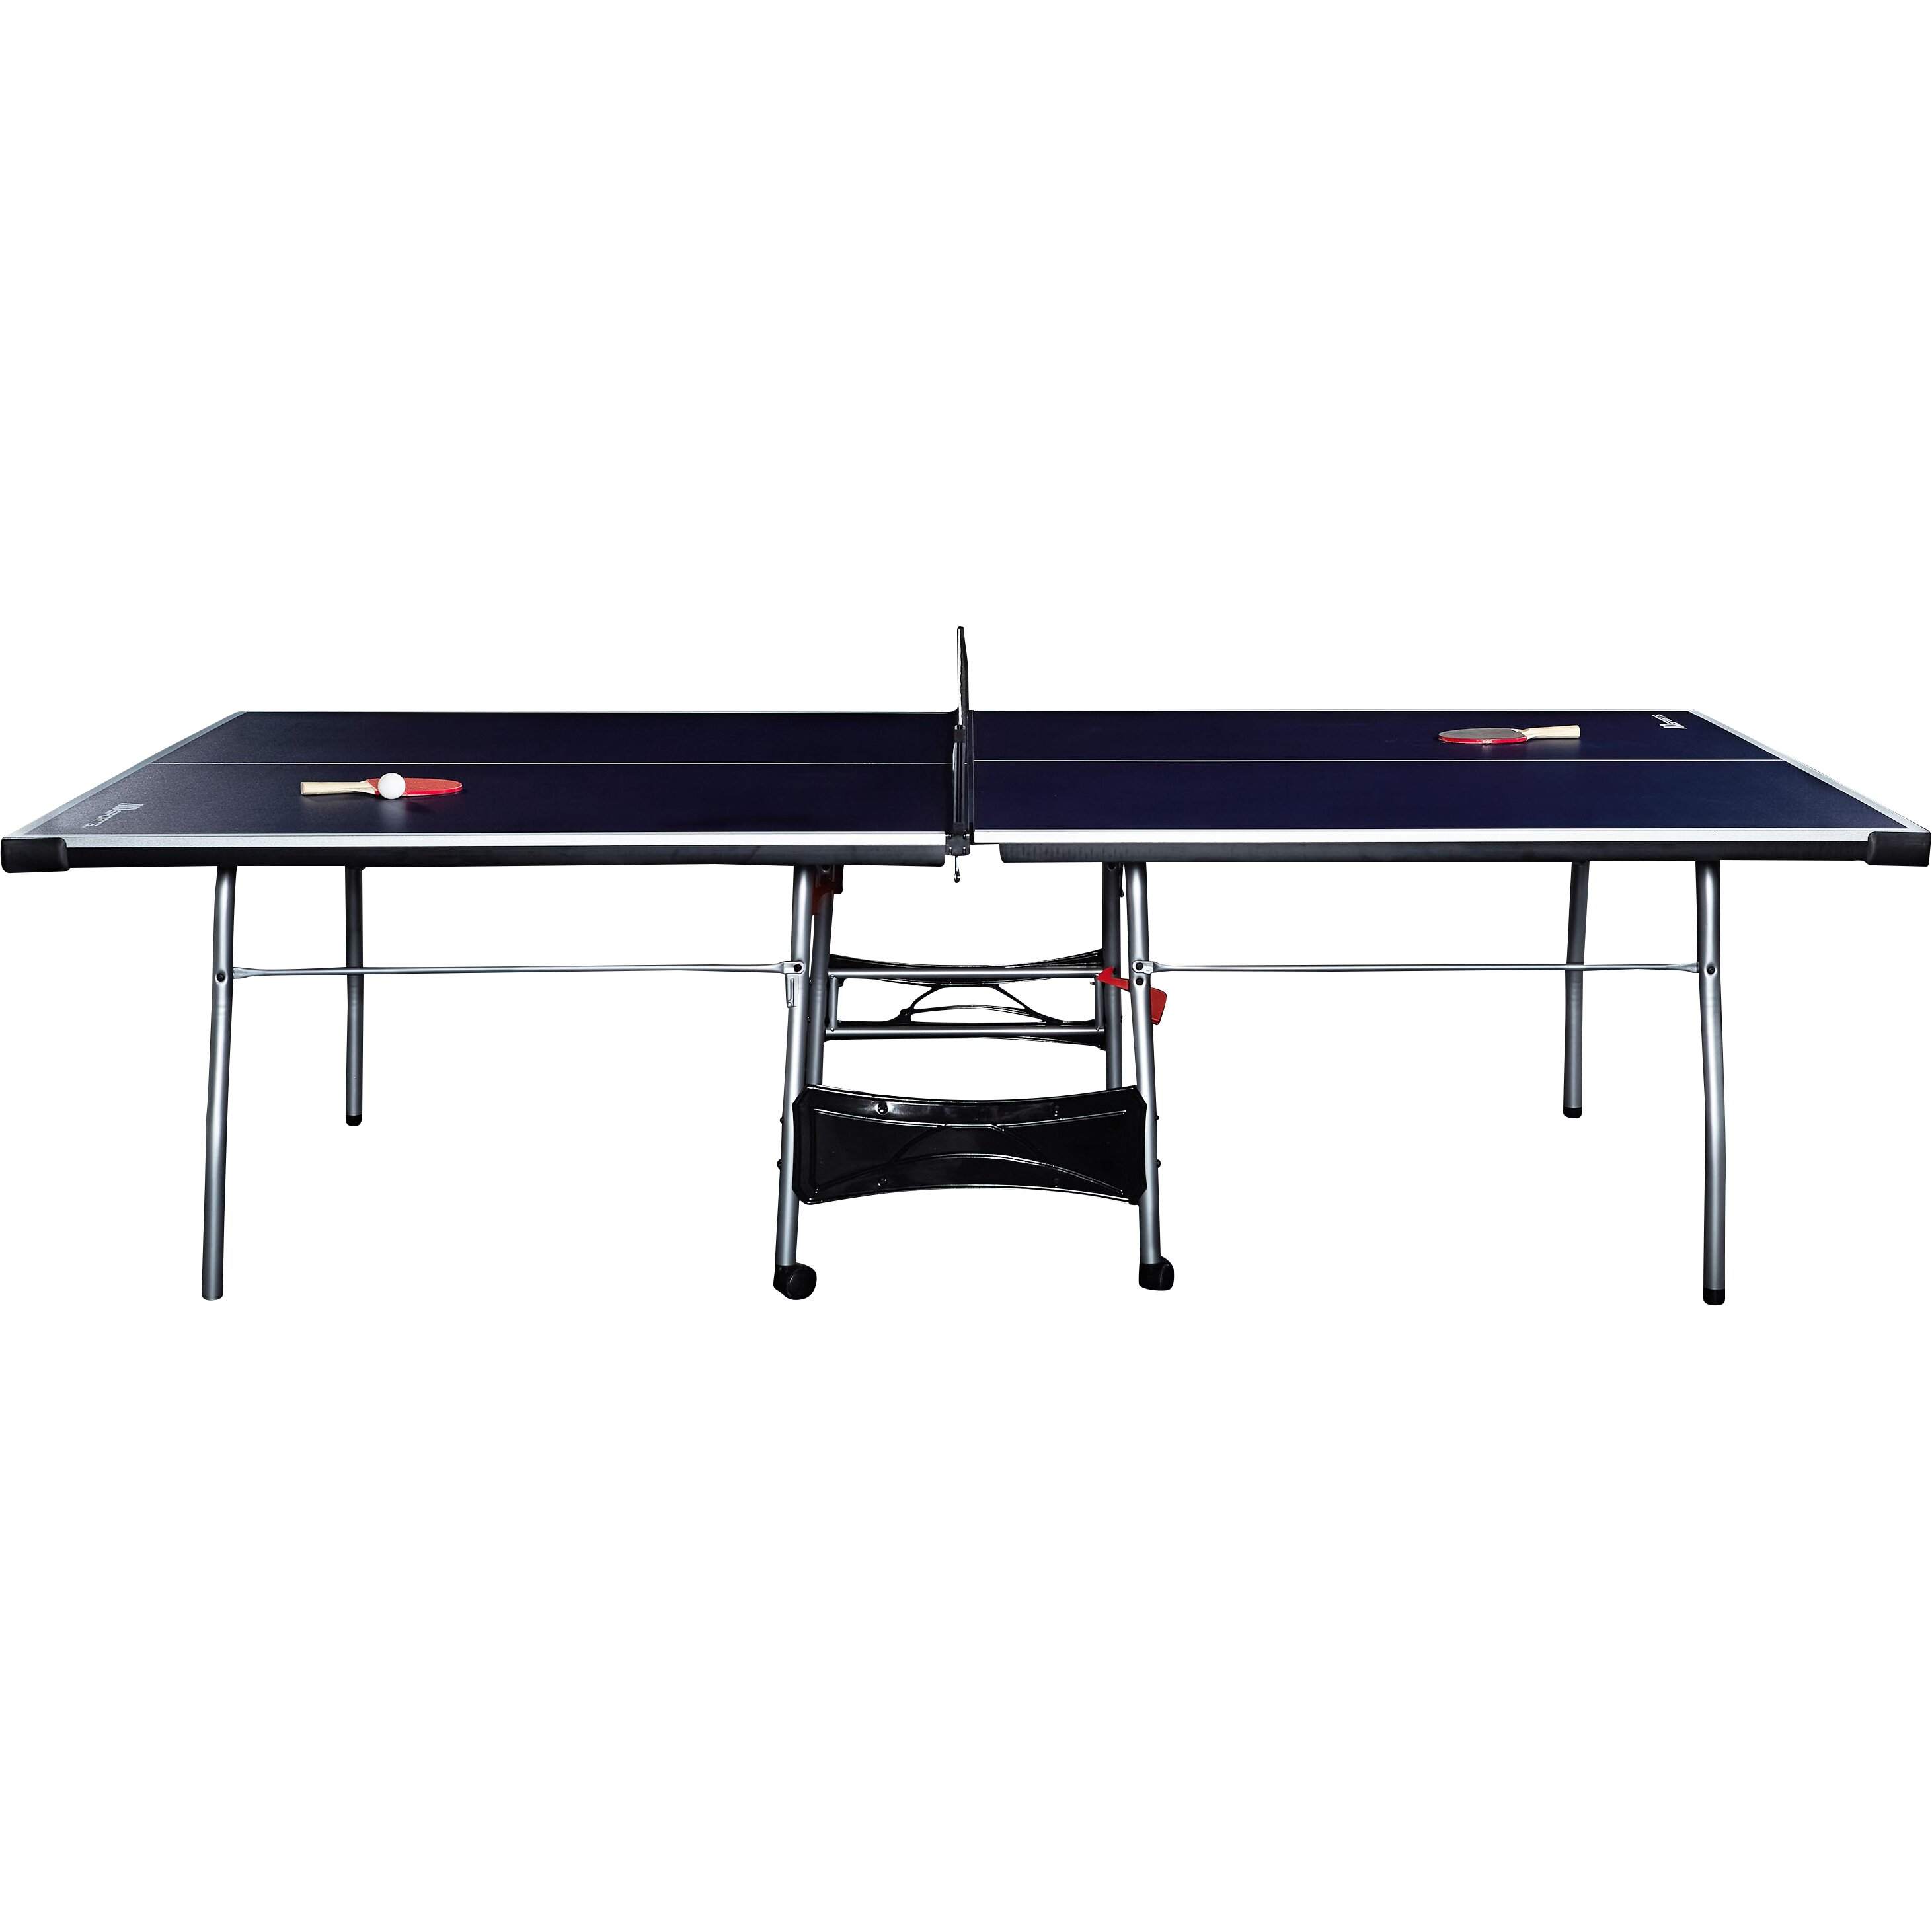 Md sports official size indoor table tennis table reviews wayfair - Dimensions of a table tennis board ...